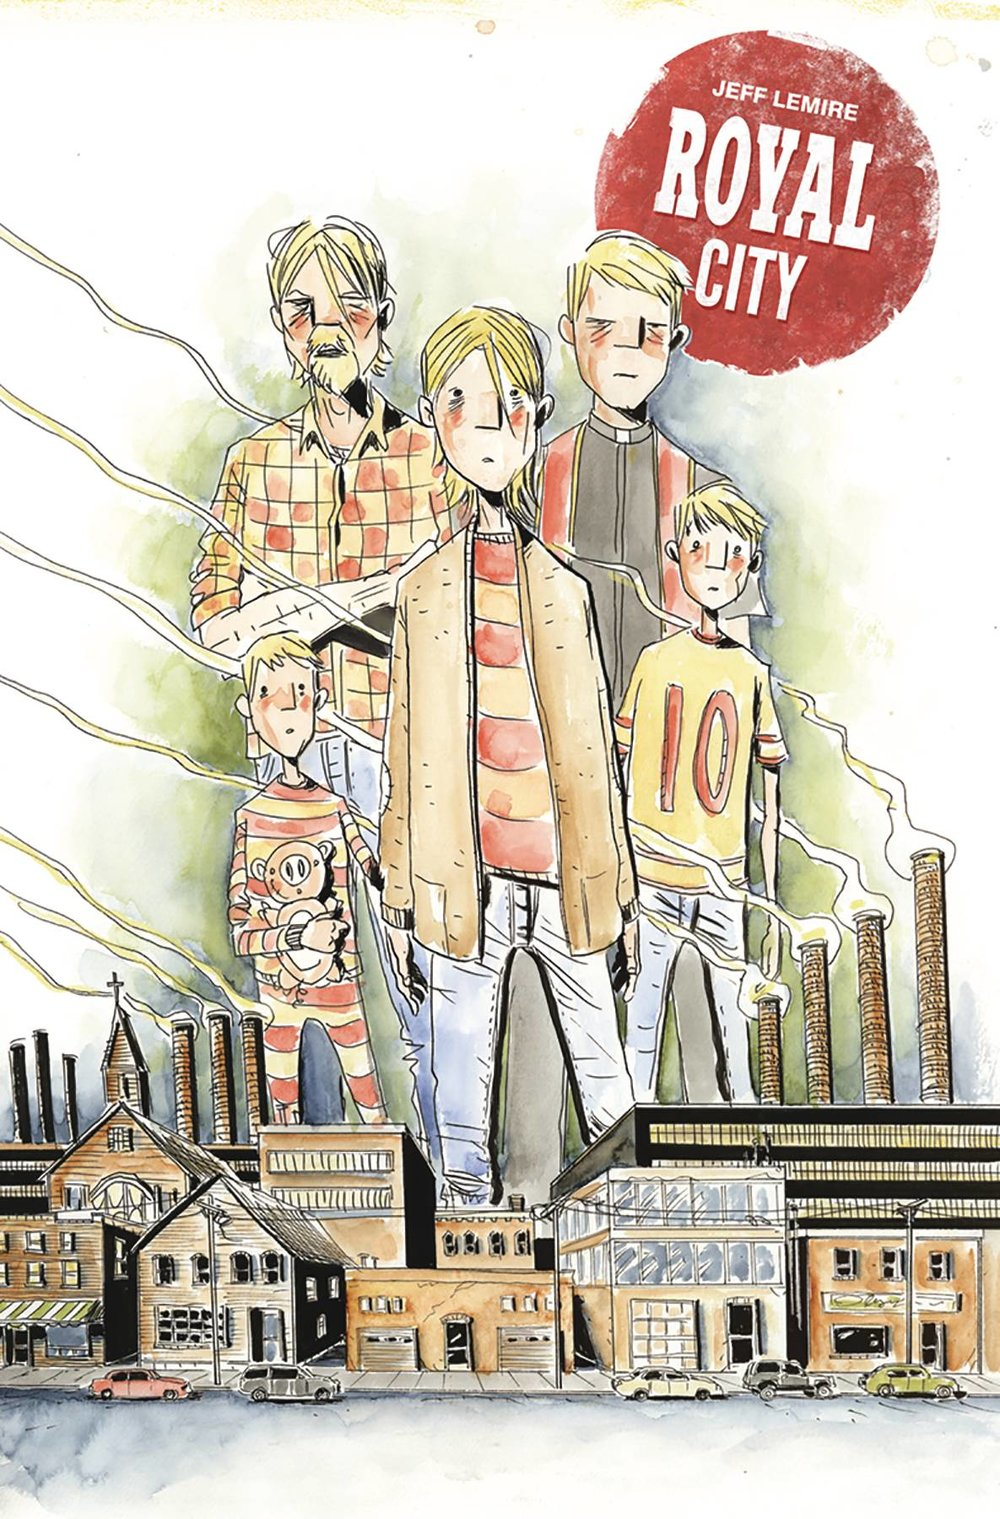 Royal City TP Vol 1 - Mike's PickWriter/Artist: Jeff LemireMan. Royal City is so good and it feels like nobody is talking about it. After I finish each issue, I'm struck by how solid and engaging a read it is.  Jeff Lemire writes some of my current favorite series, specifically Black Hammer for Dark Horse and Descender for Image, but those are both (excellent) genre series. Royal City is much more grounded, although there are hints of surrealism that flavor the story of a small town family haunted (maybe literally, maybe not) by their long dead sibling/son. Lemire pulls double duty here, and his sketchy, impressionistic art is perfectly suited for this melancholy, possibly supernatural tale.  Volume one (available now) follows the family in the present as they reunite in the crumbling titular town where they grew up and experienced loves and losses. Volume two (due out in late April) follows the last days of the deceased son in the 1990s. I, too, grew up in a small town that's now seen better days and I was also a teenager/young adult in the '90s so this book really appeals to me. Nothing else I've ever read has come close to palpably conveying those experiences. The prolific Lemire is at the top of his game here, breathing life into characters and a town in a painfully, and beautifully, real way.